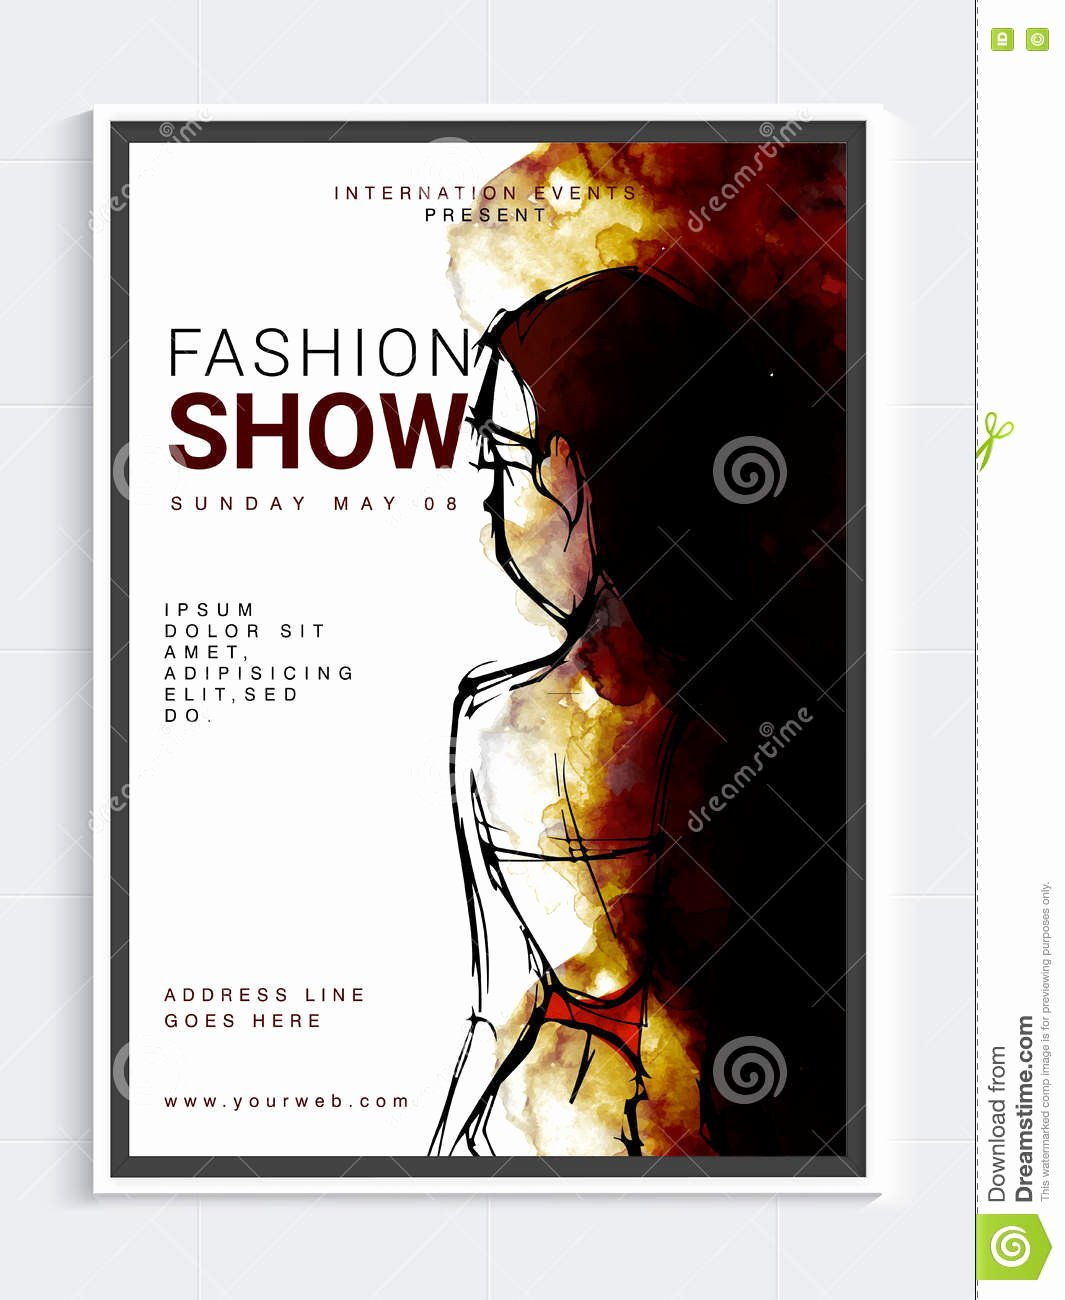 Fashion Show Flyer Template Free New Fashion Show Template Banner Flyer Design Stock Illustration Illustration Of Female